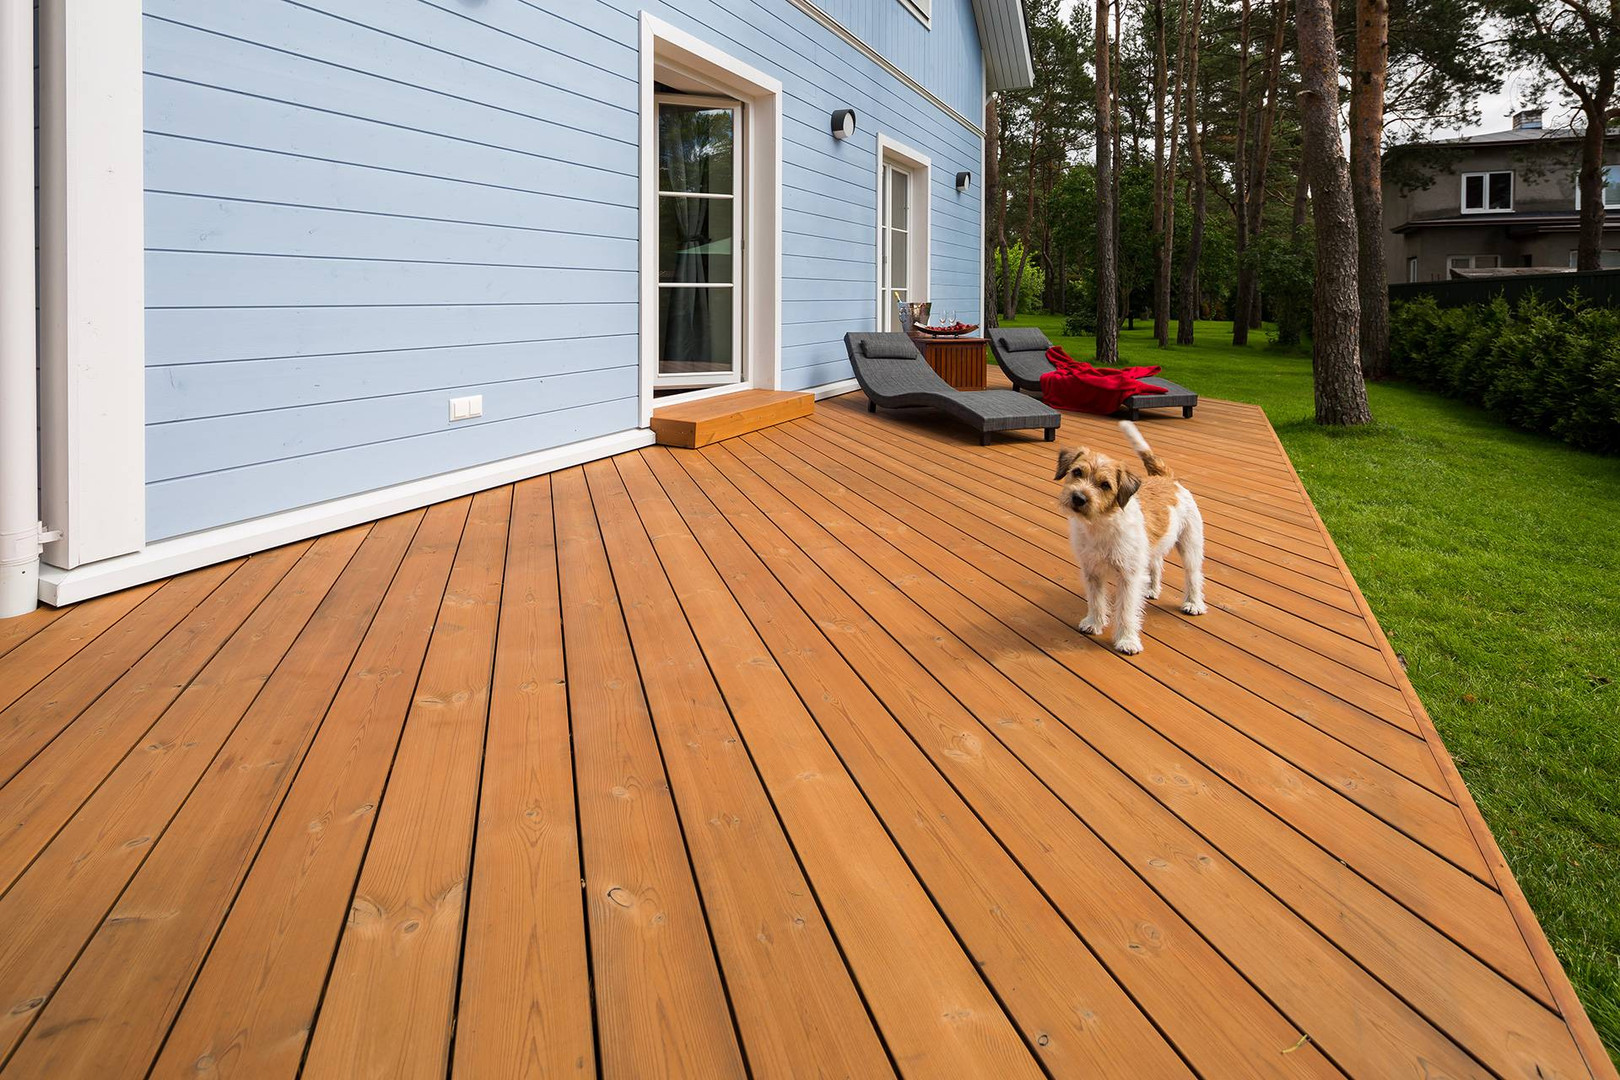 Thermory_Gallery_Decking_Pine_Estonia_2.